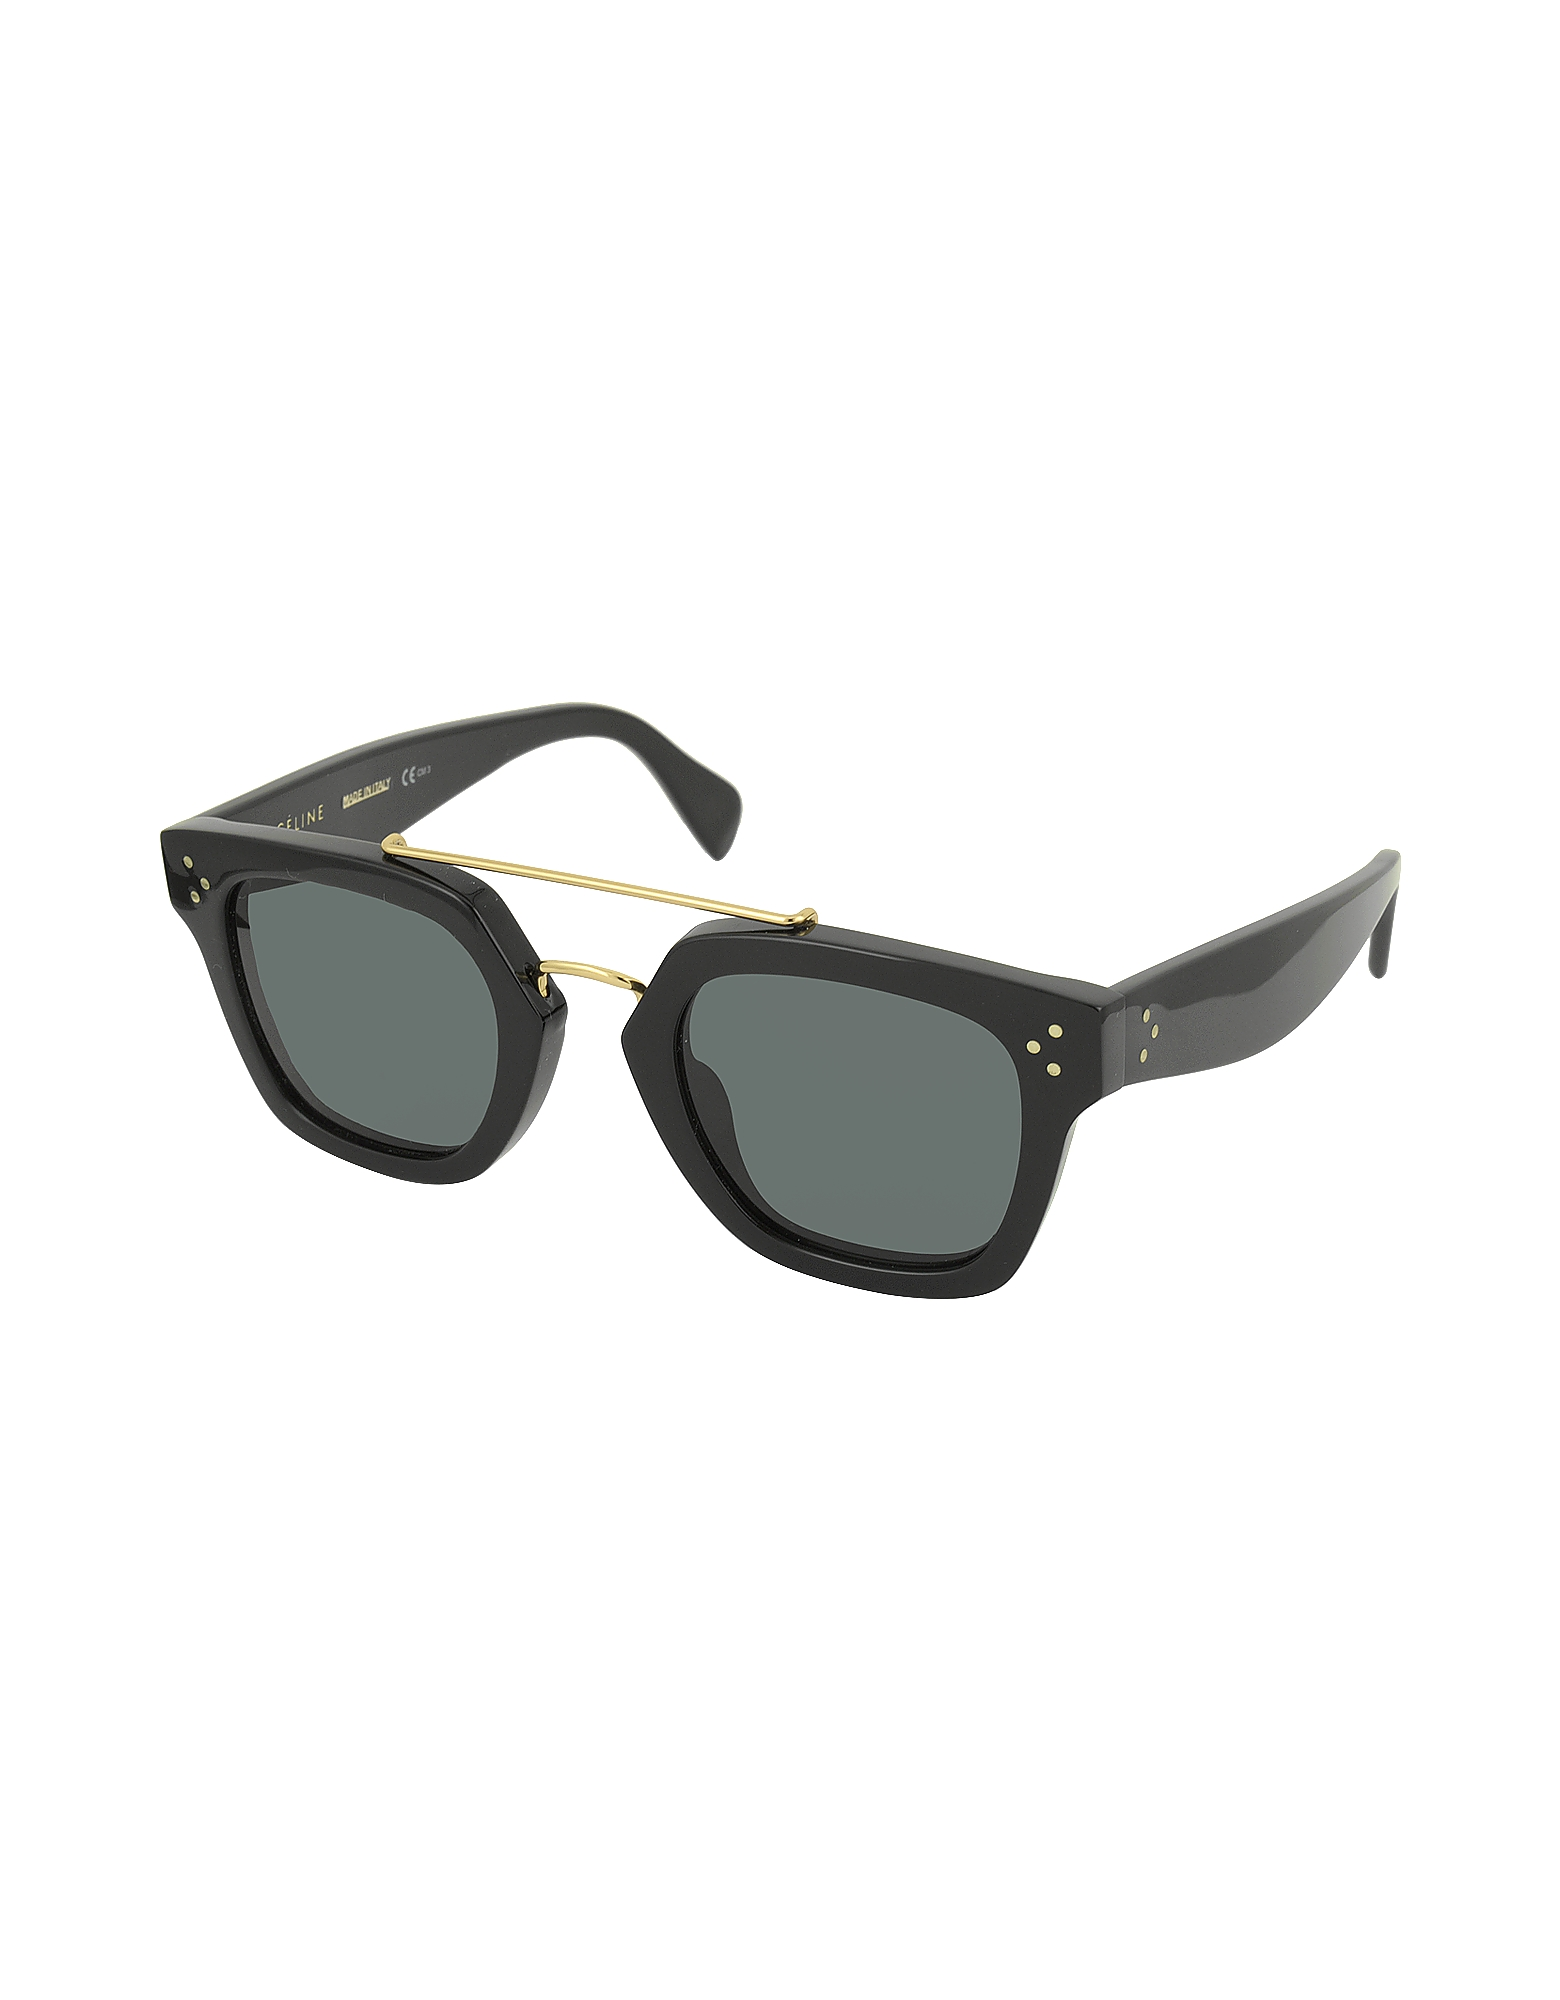 BRIDGE CL 41077/S 807BN Black Acetate Geometric Unisex Sunglasses от Forzieri.com INT